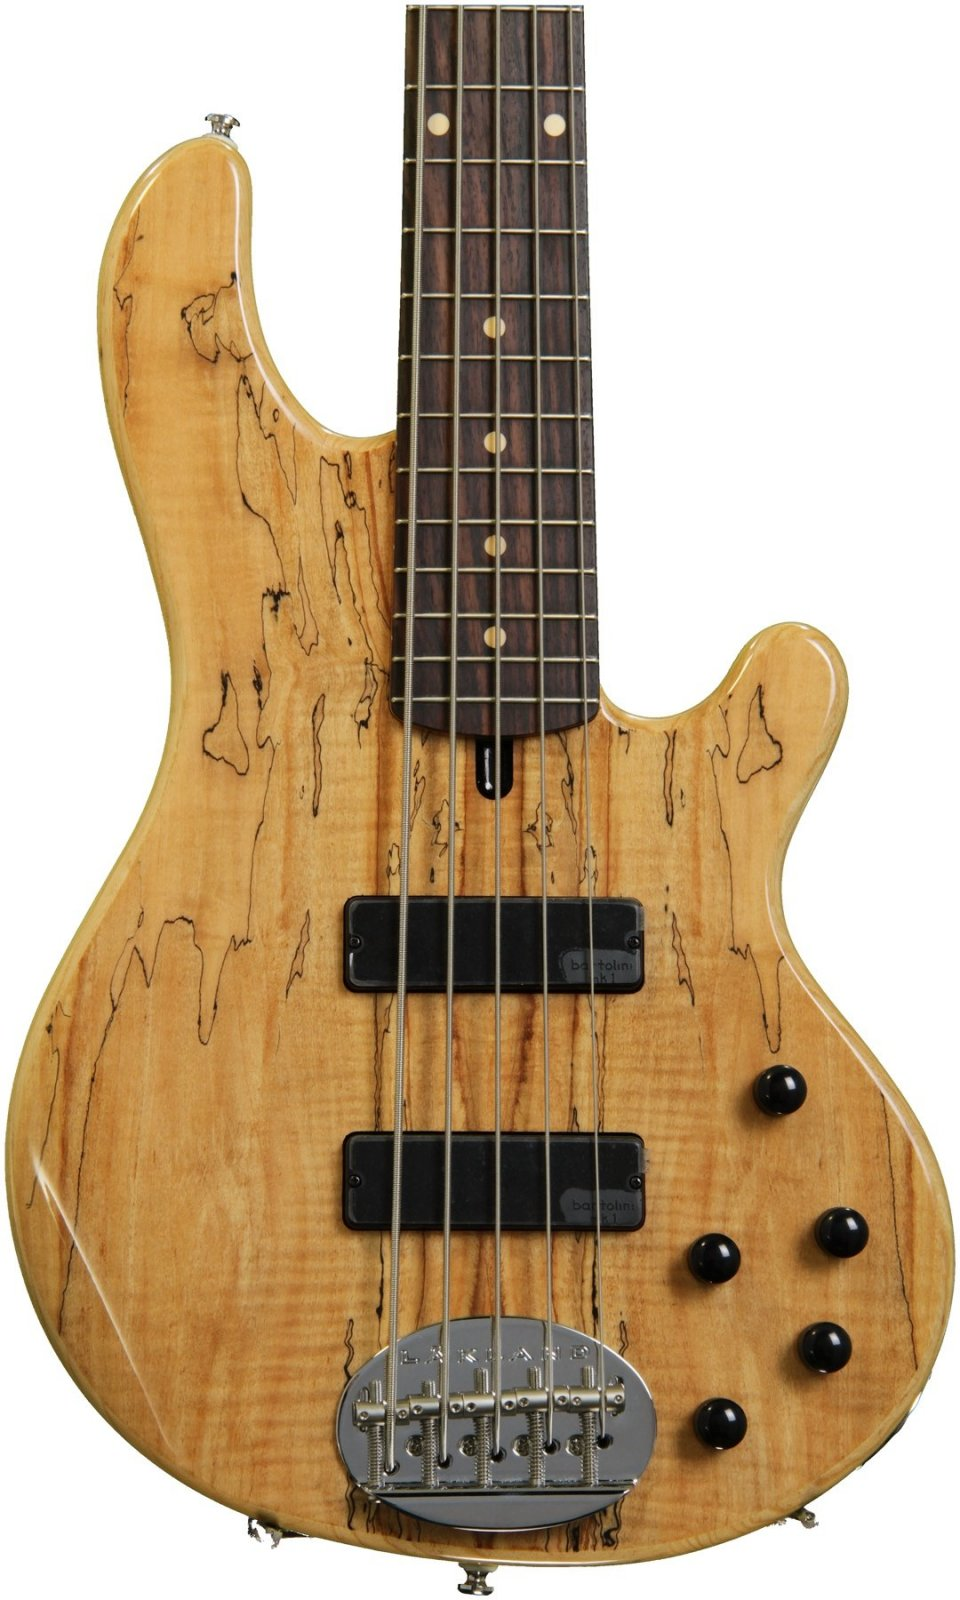 S55-01 Deluxe Spaulted Maple